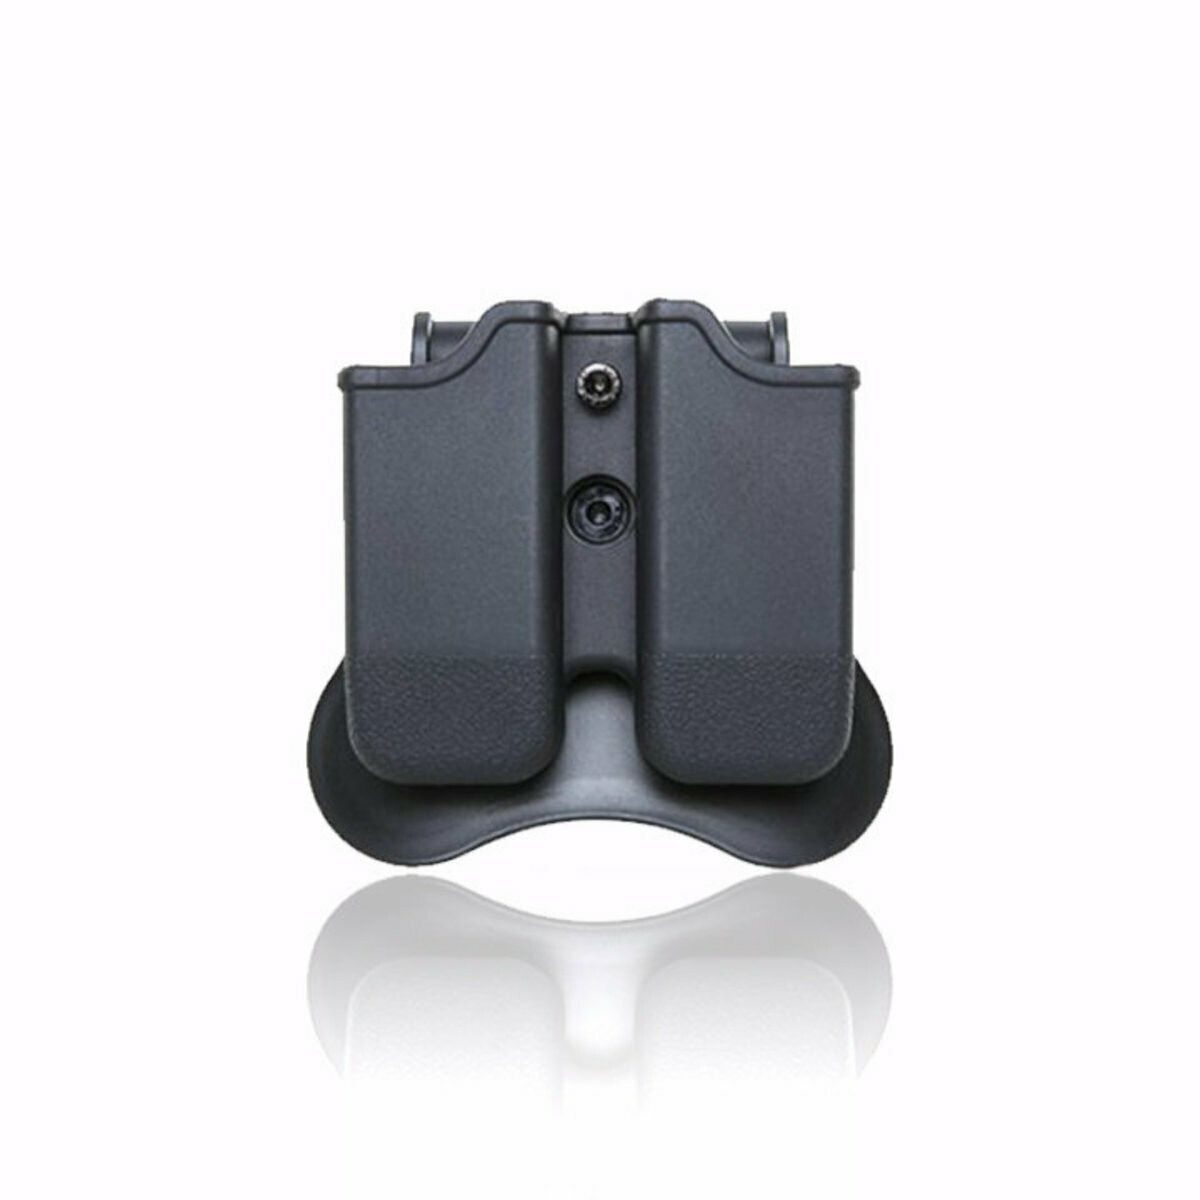 Cytac Double Magazine Pouch For Beretta 92